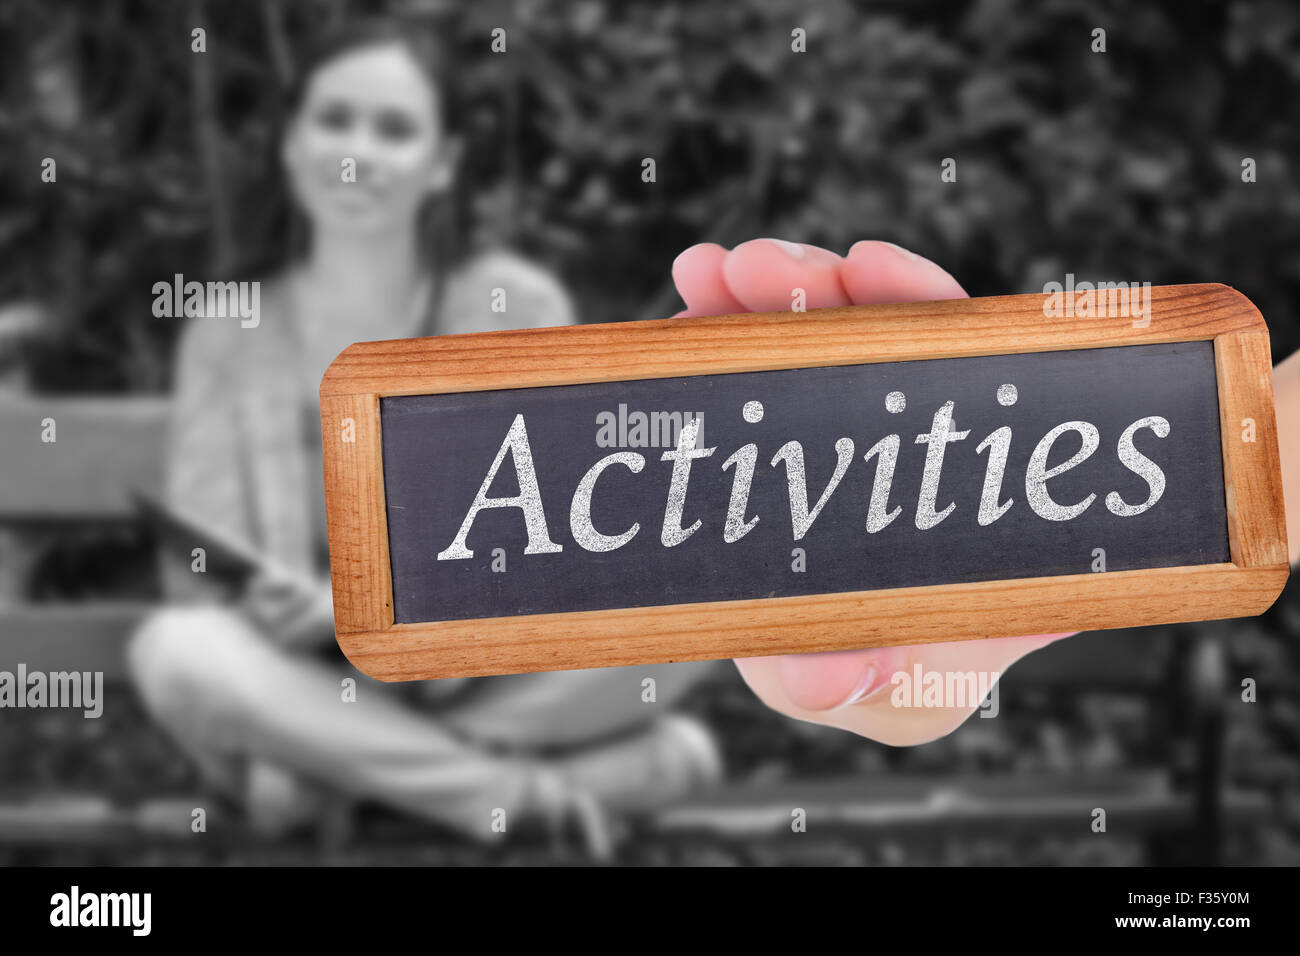 Activities against smiling student sitting on bench listening music with mobile phone and holding bo - Stock Image